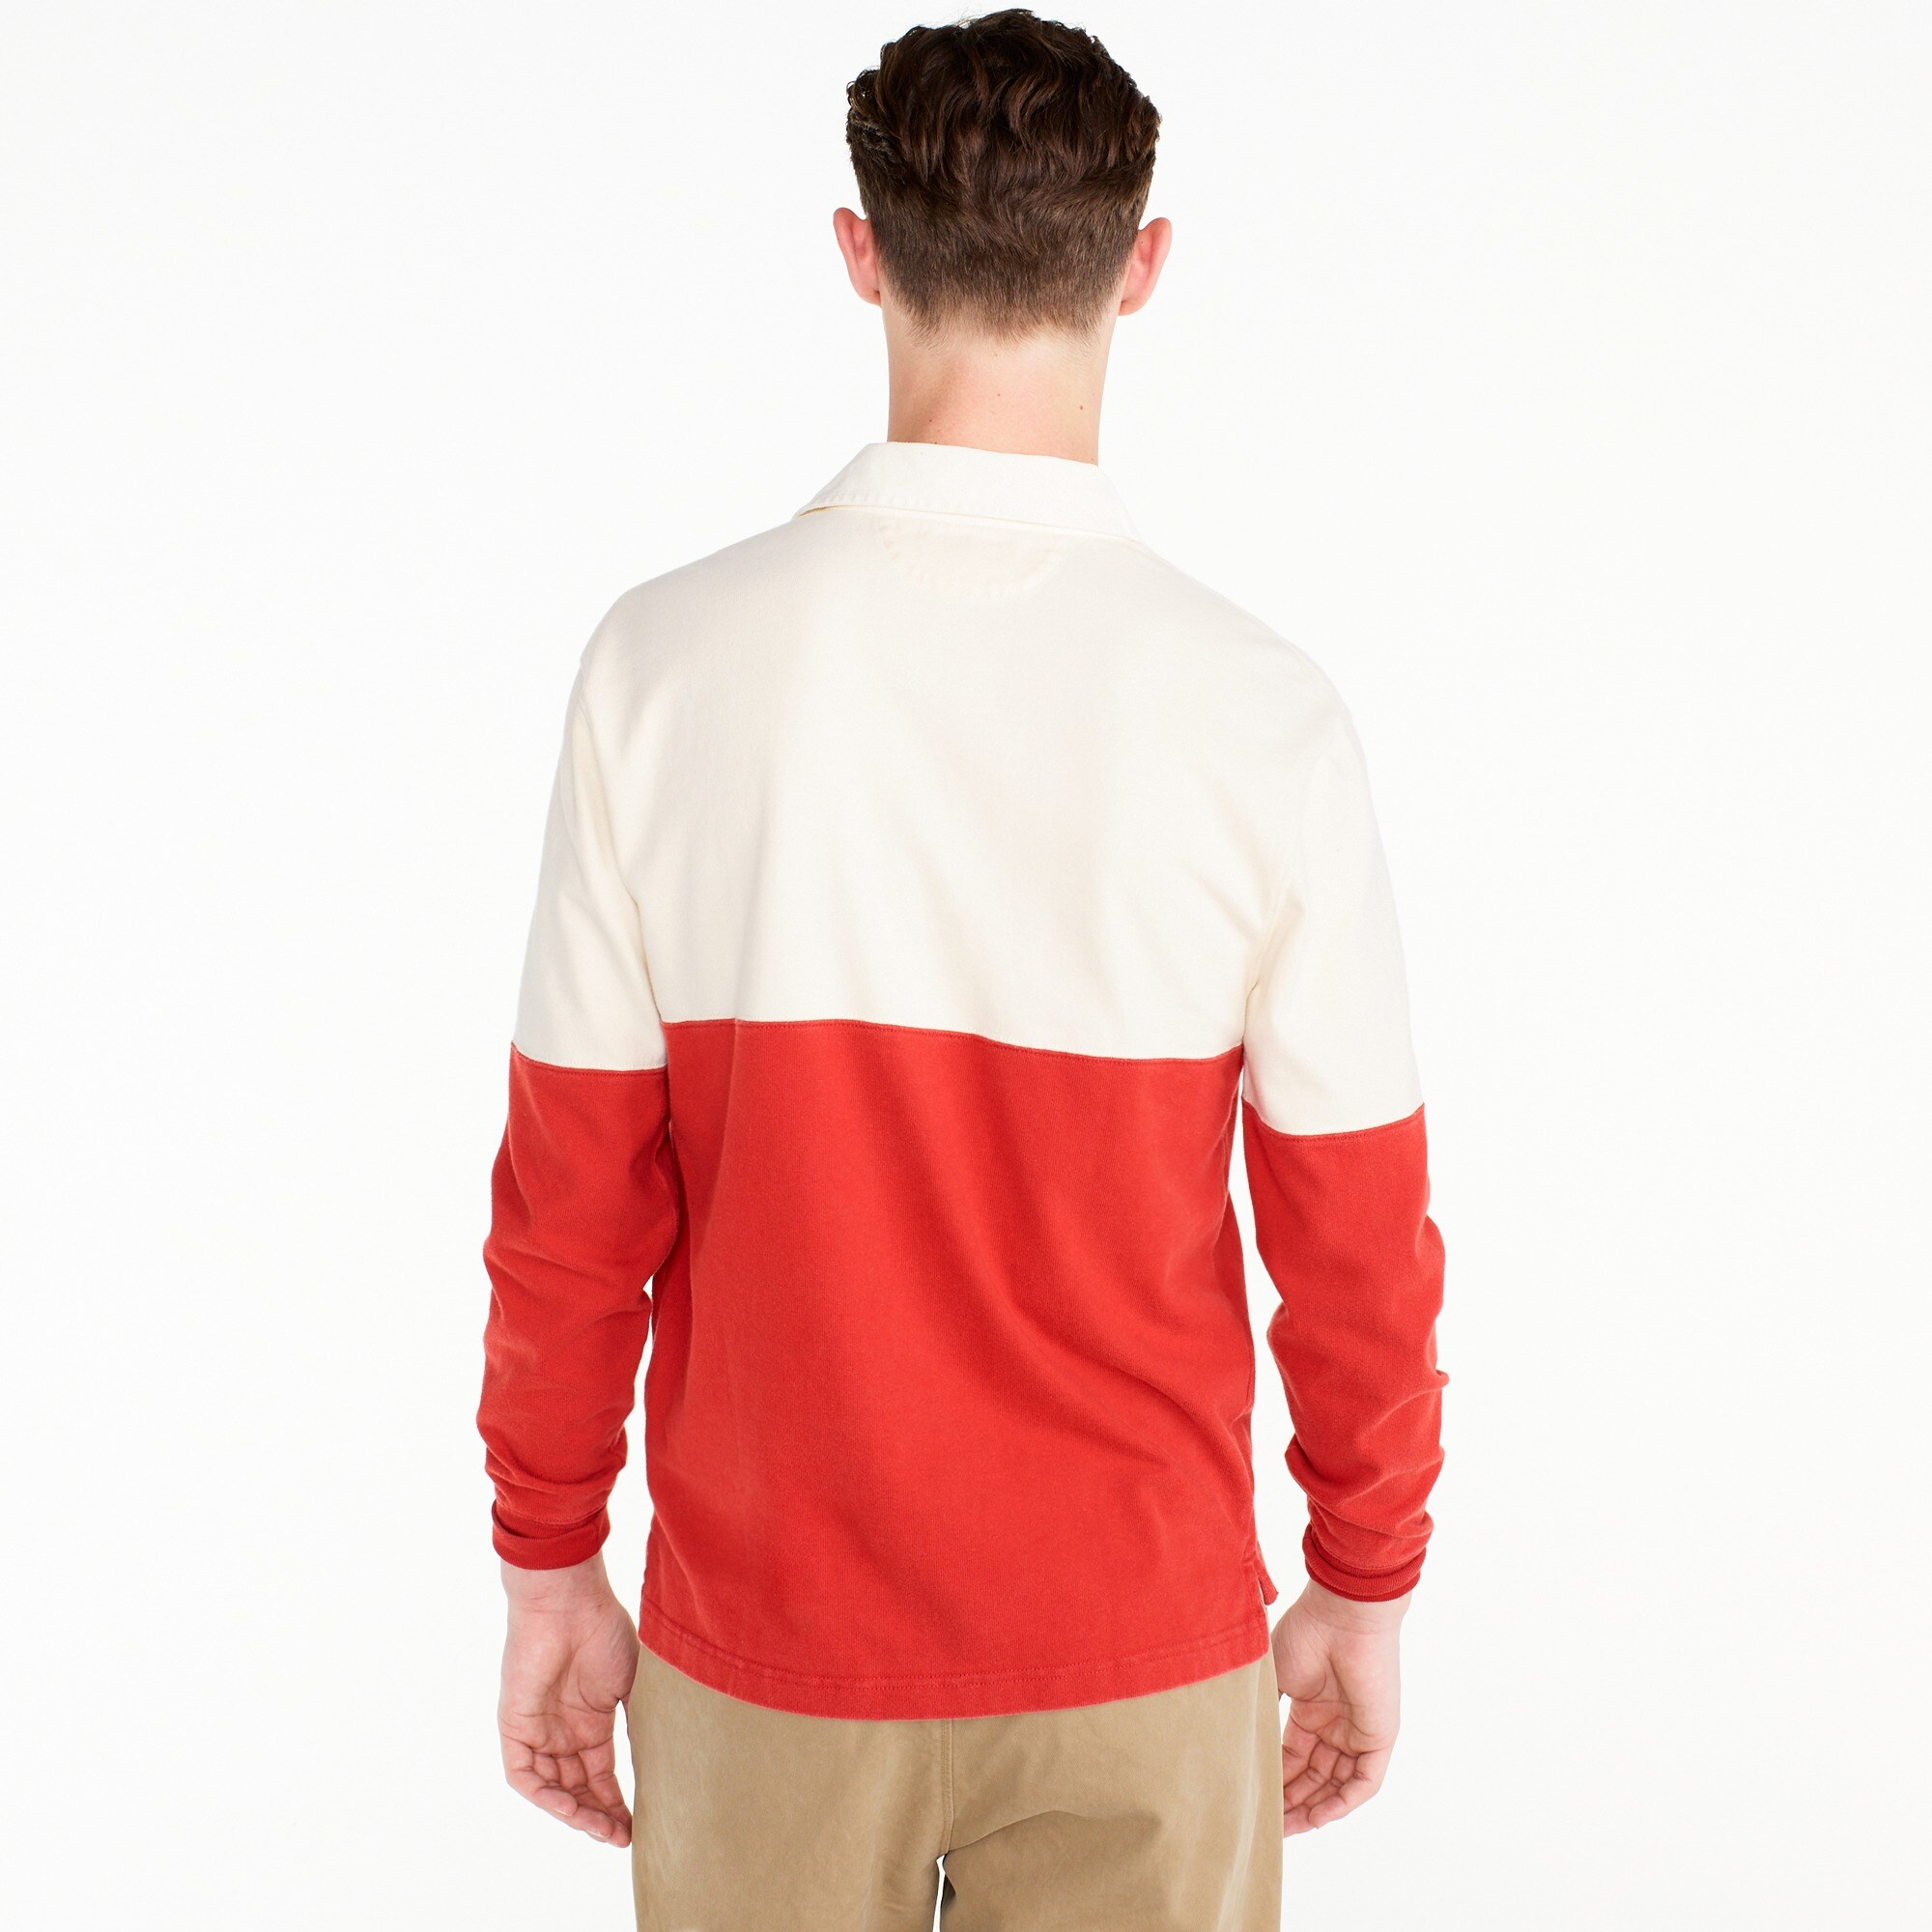 Image 3 for Unisex 1984 rugby shirt in colorblock